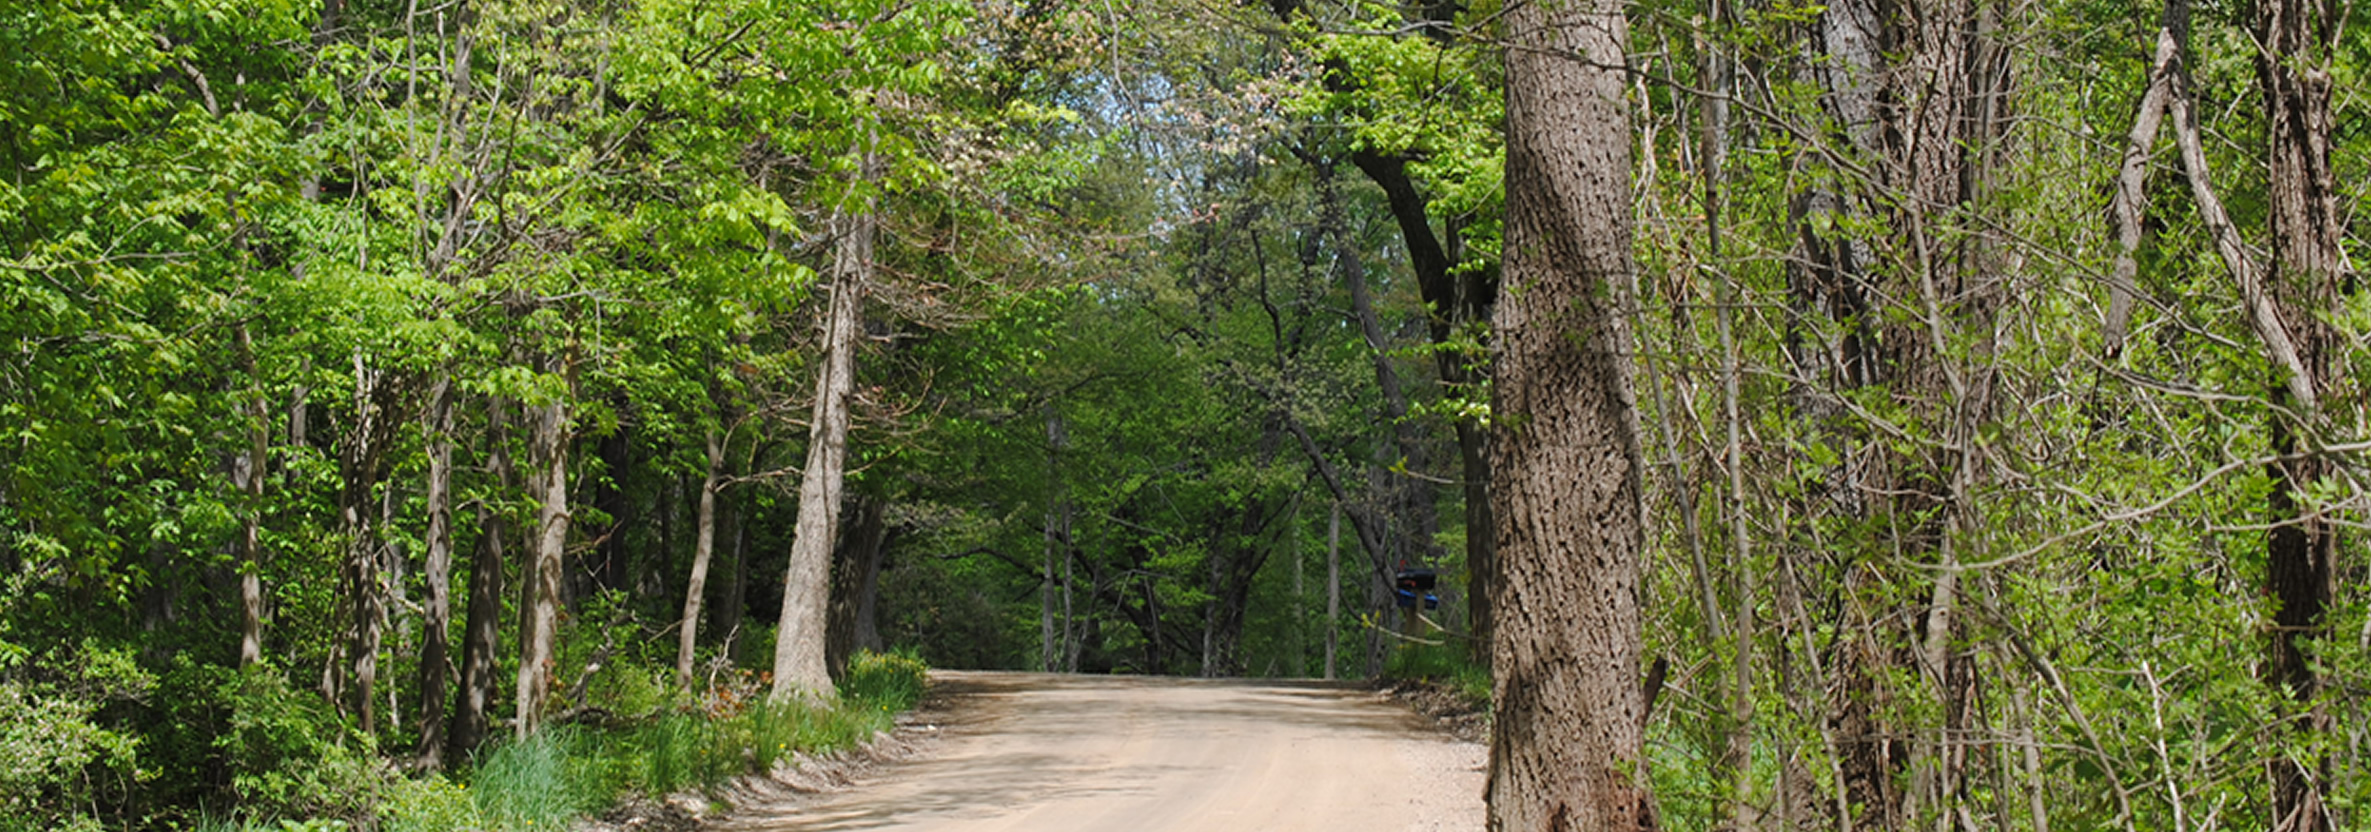 Highland Township Dirt Road.jpg